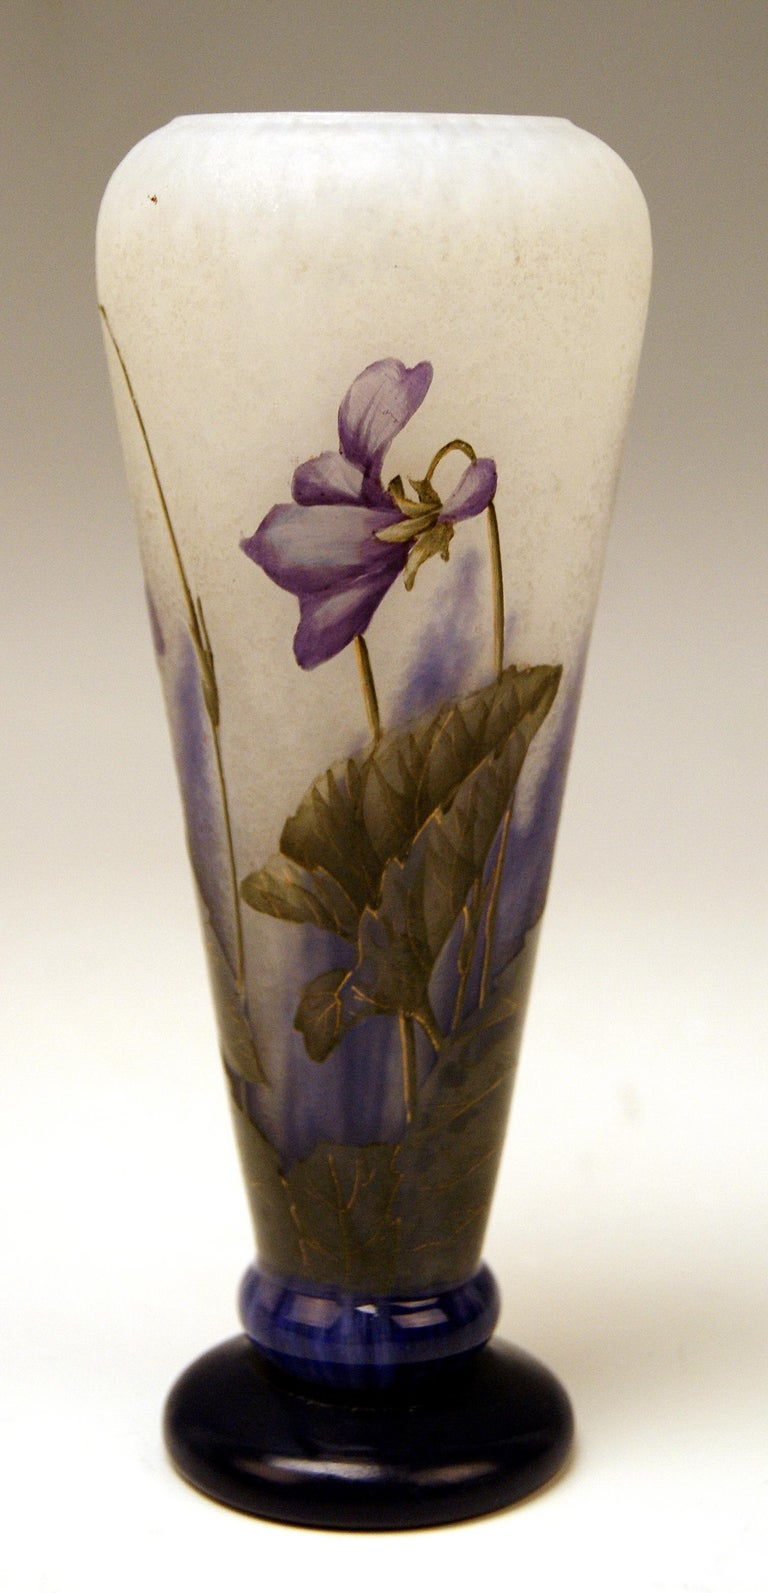 Daum Nancy Cameo finest as well as early art glass oblong tapering vase of Art Nouveau period.